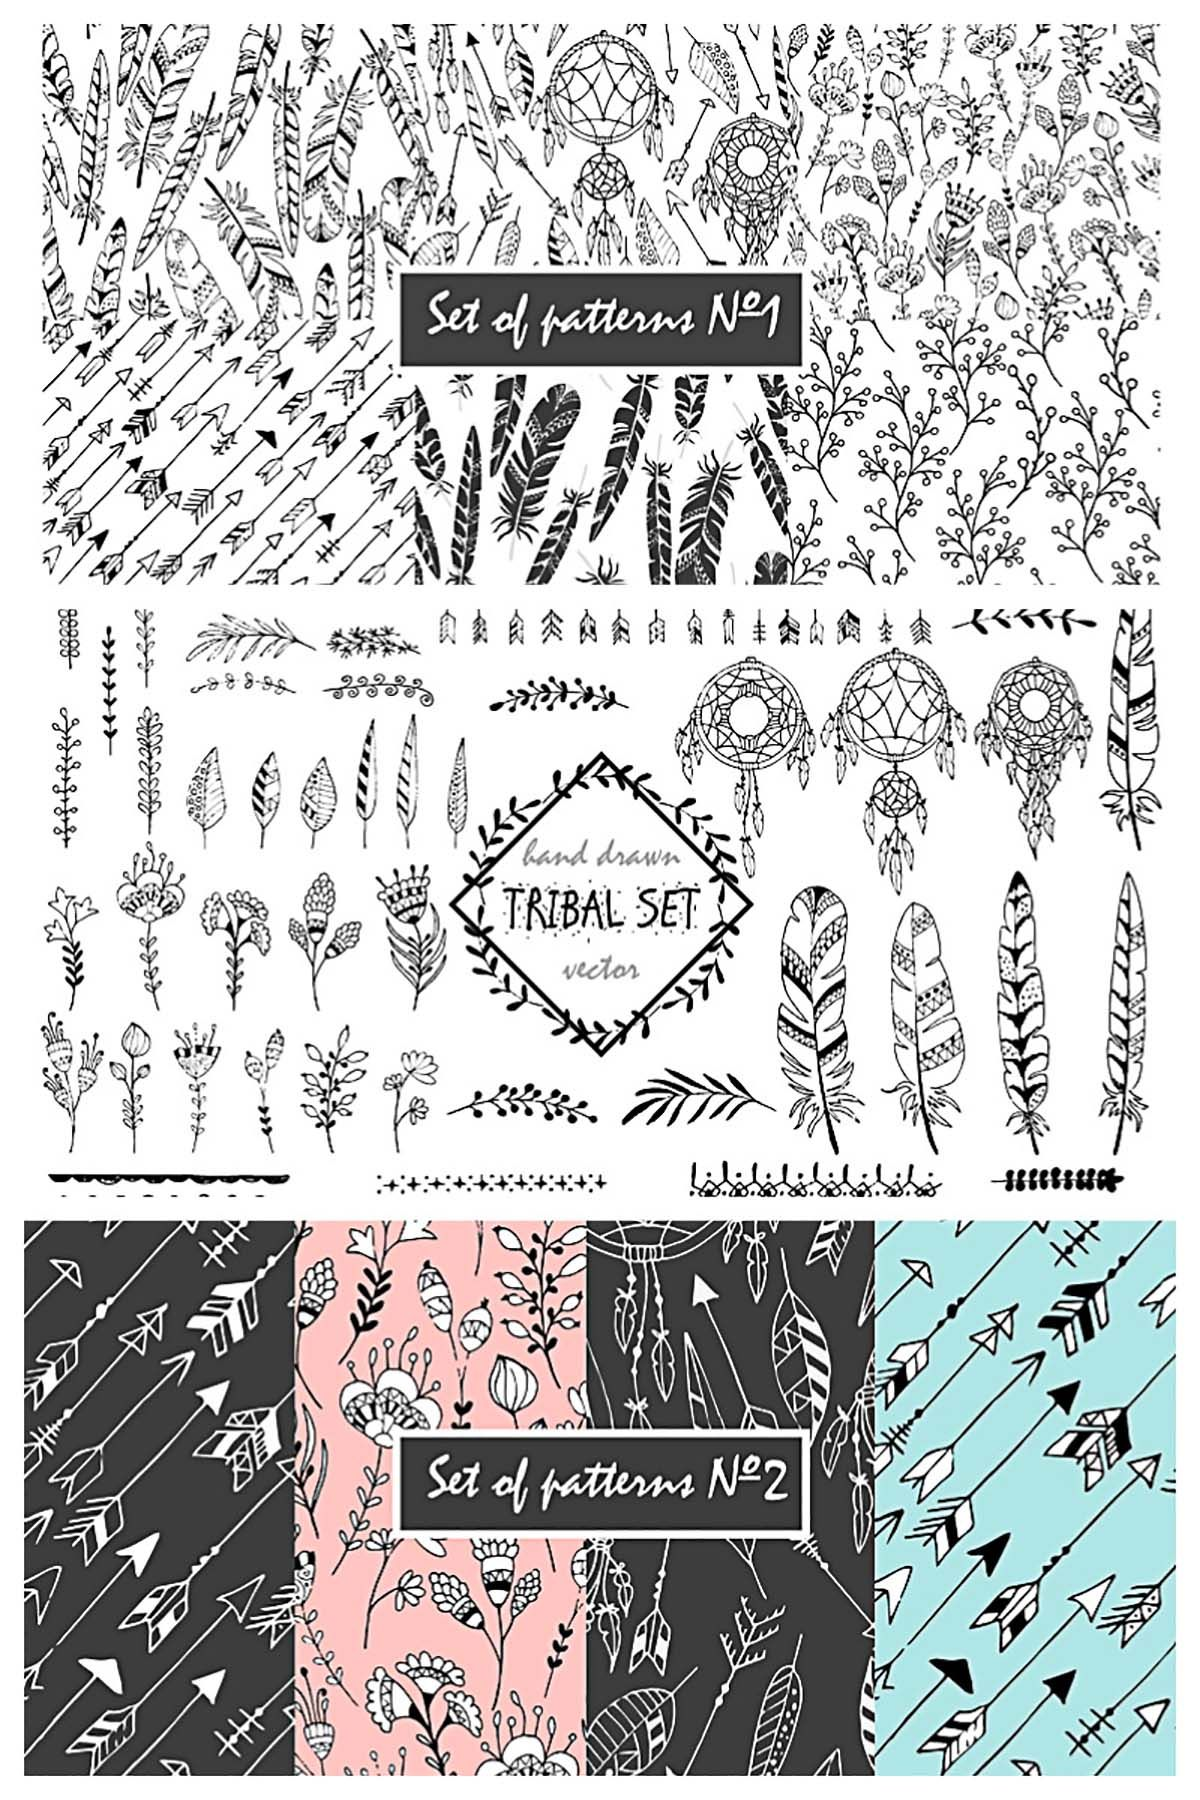 Tribal elements wreaths arrows and patterns (With images